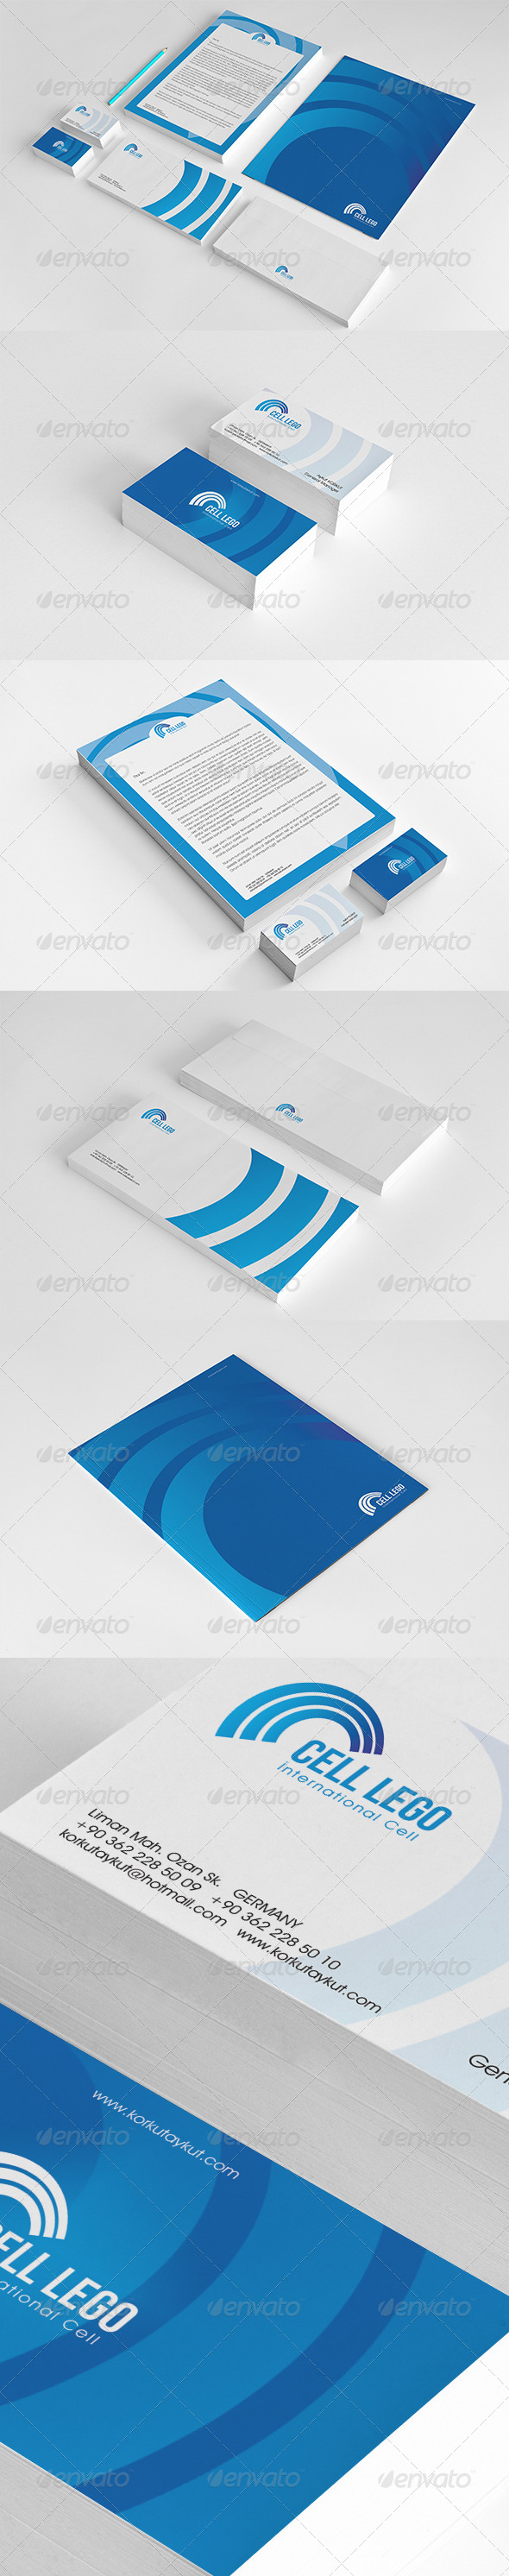 Cell Corporate Identity Package  - Stationery Print Templates